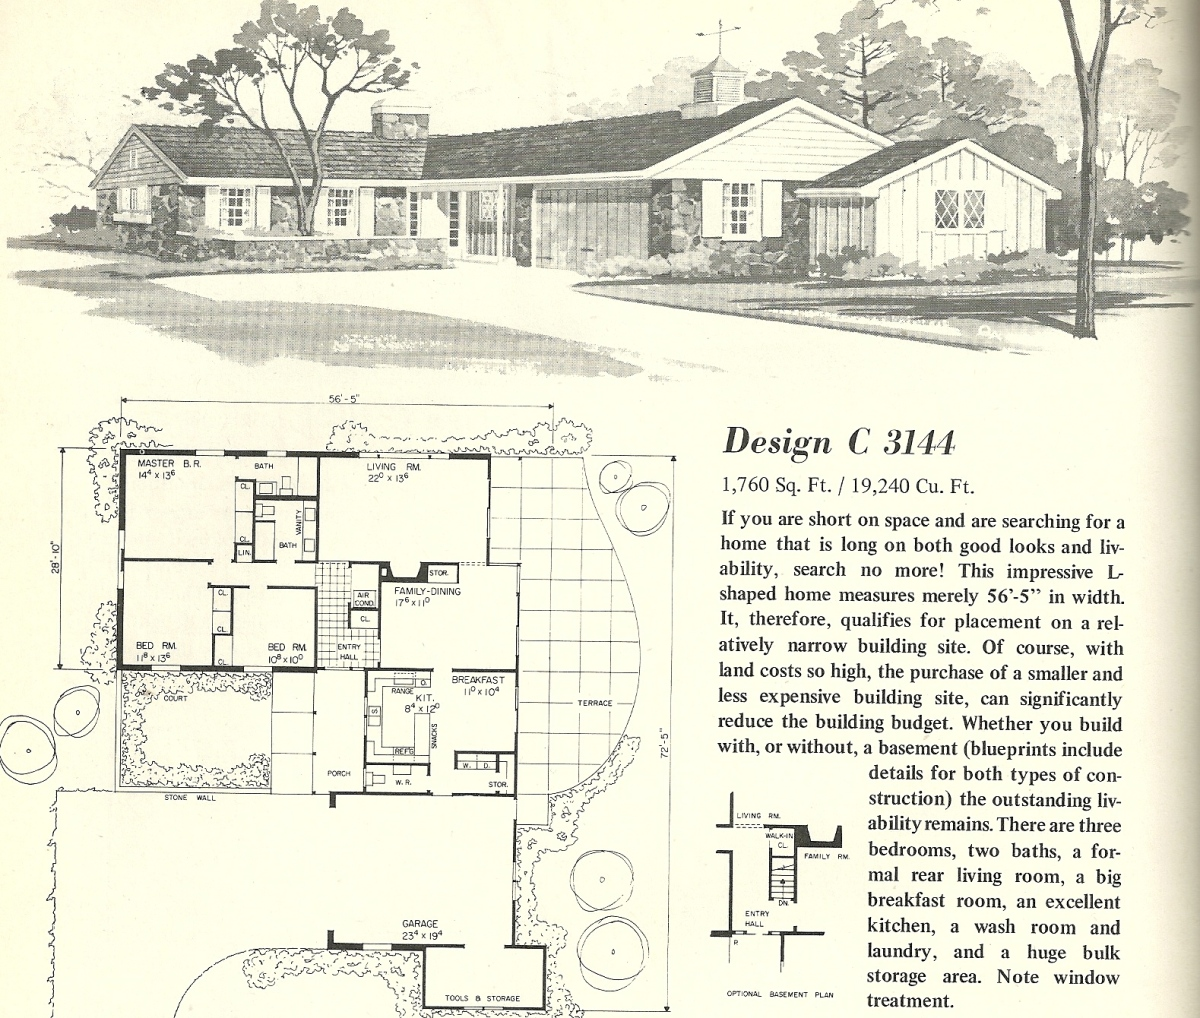 Vintage house plans 3144 antique alter ego for T shaped house design